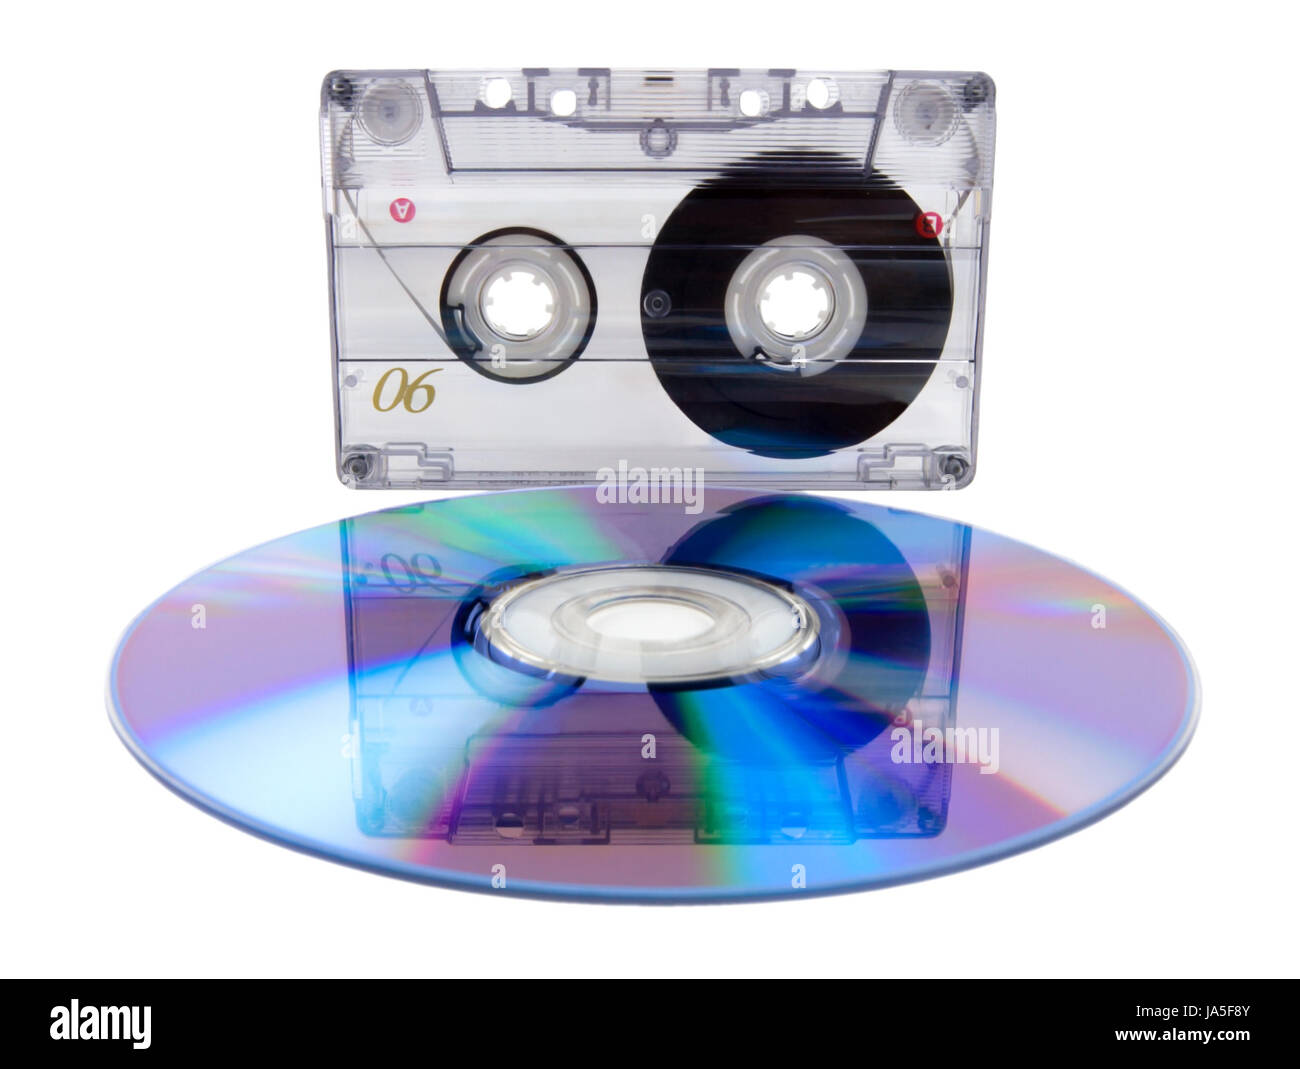 Analog audio tape cassette and digital compact disc isolated on a white background - Stock Image